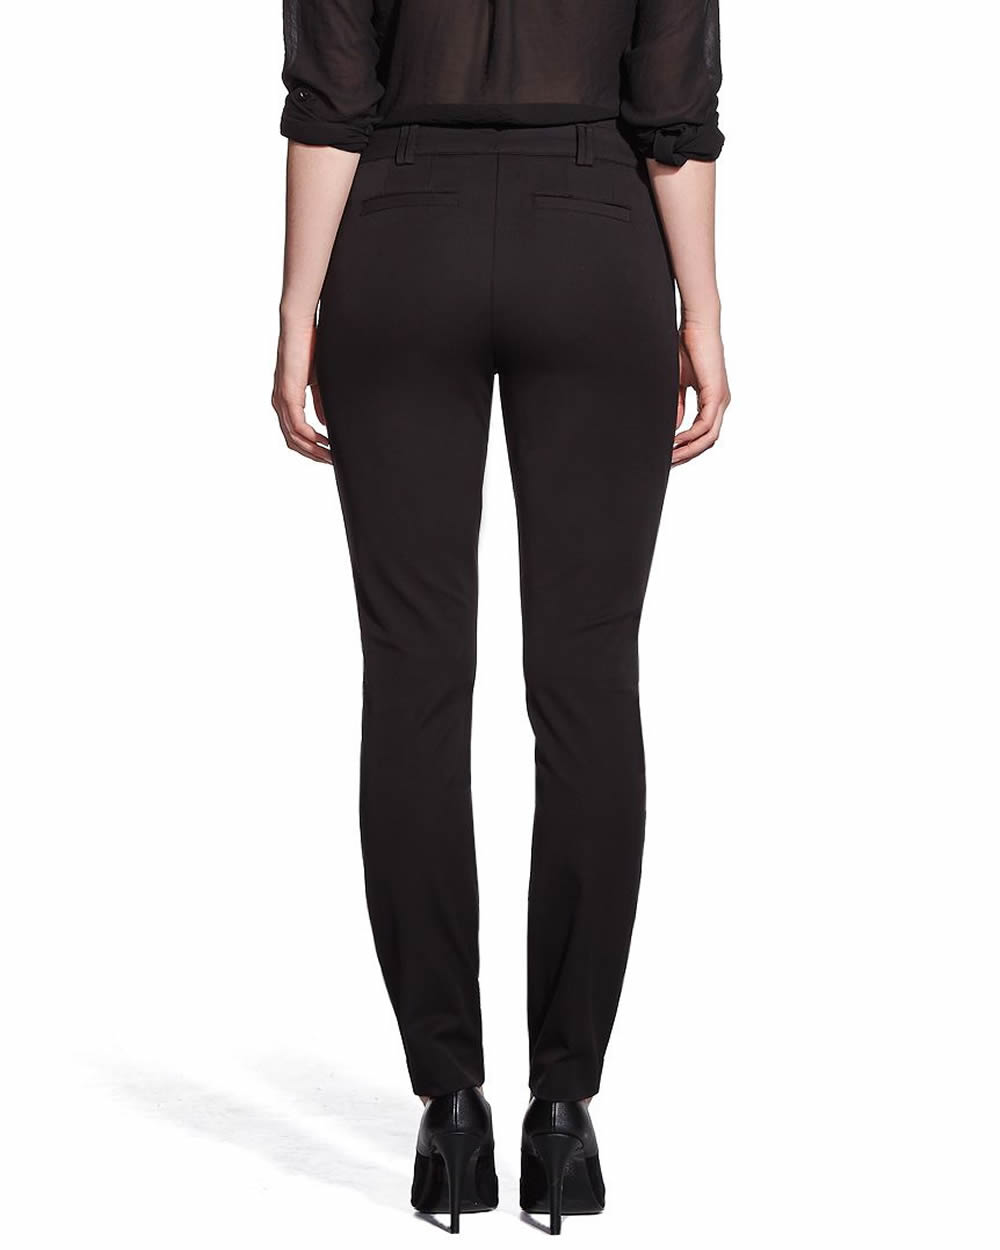 Fantastic The Capris Or Crop Pant Is A Comfortable Summer Option Just Make Sure To